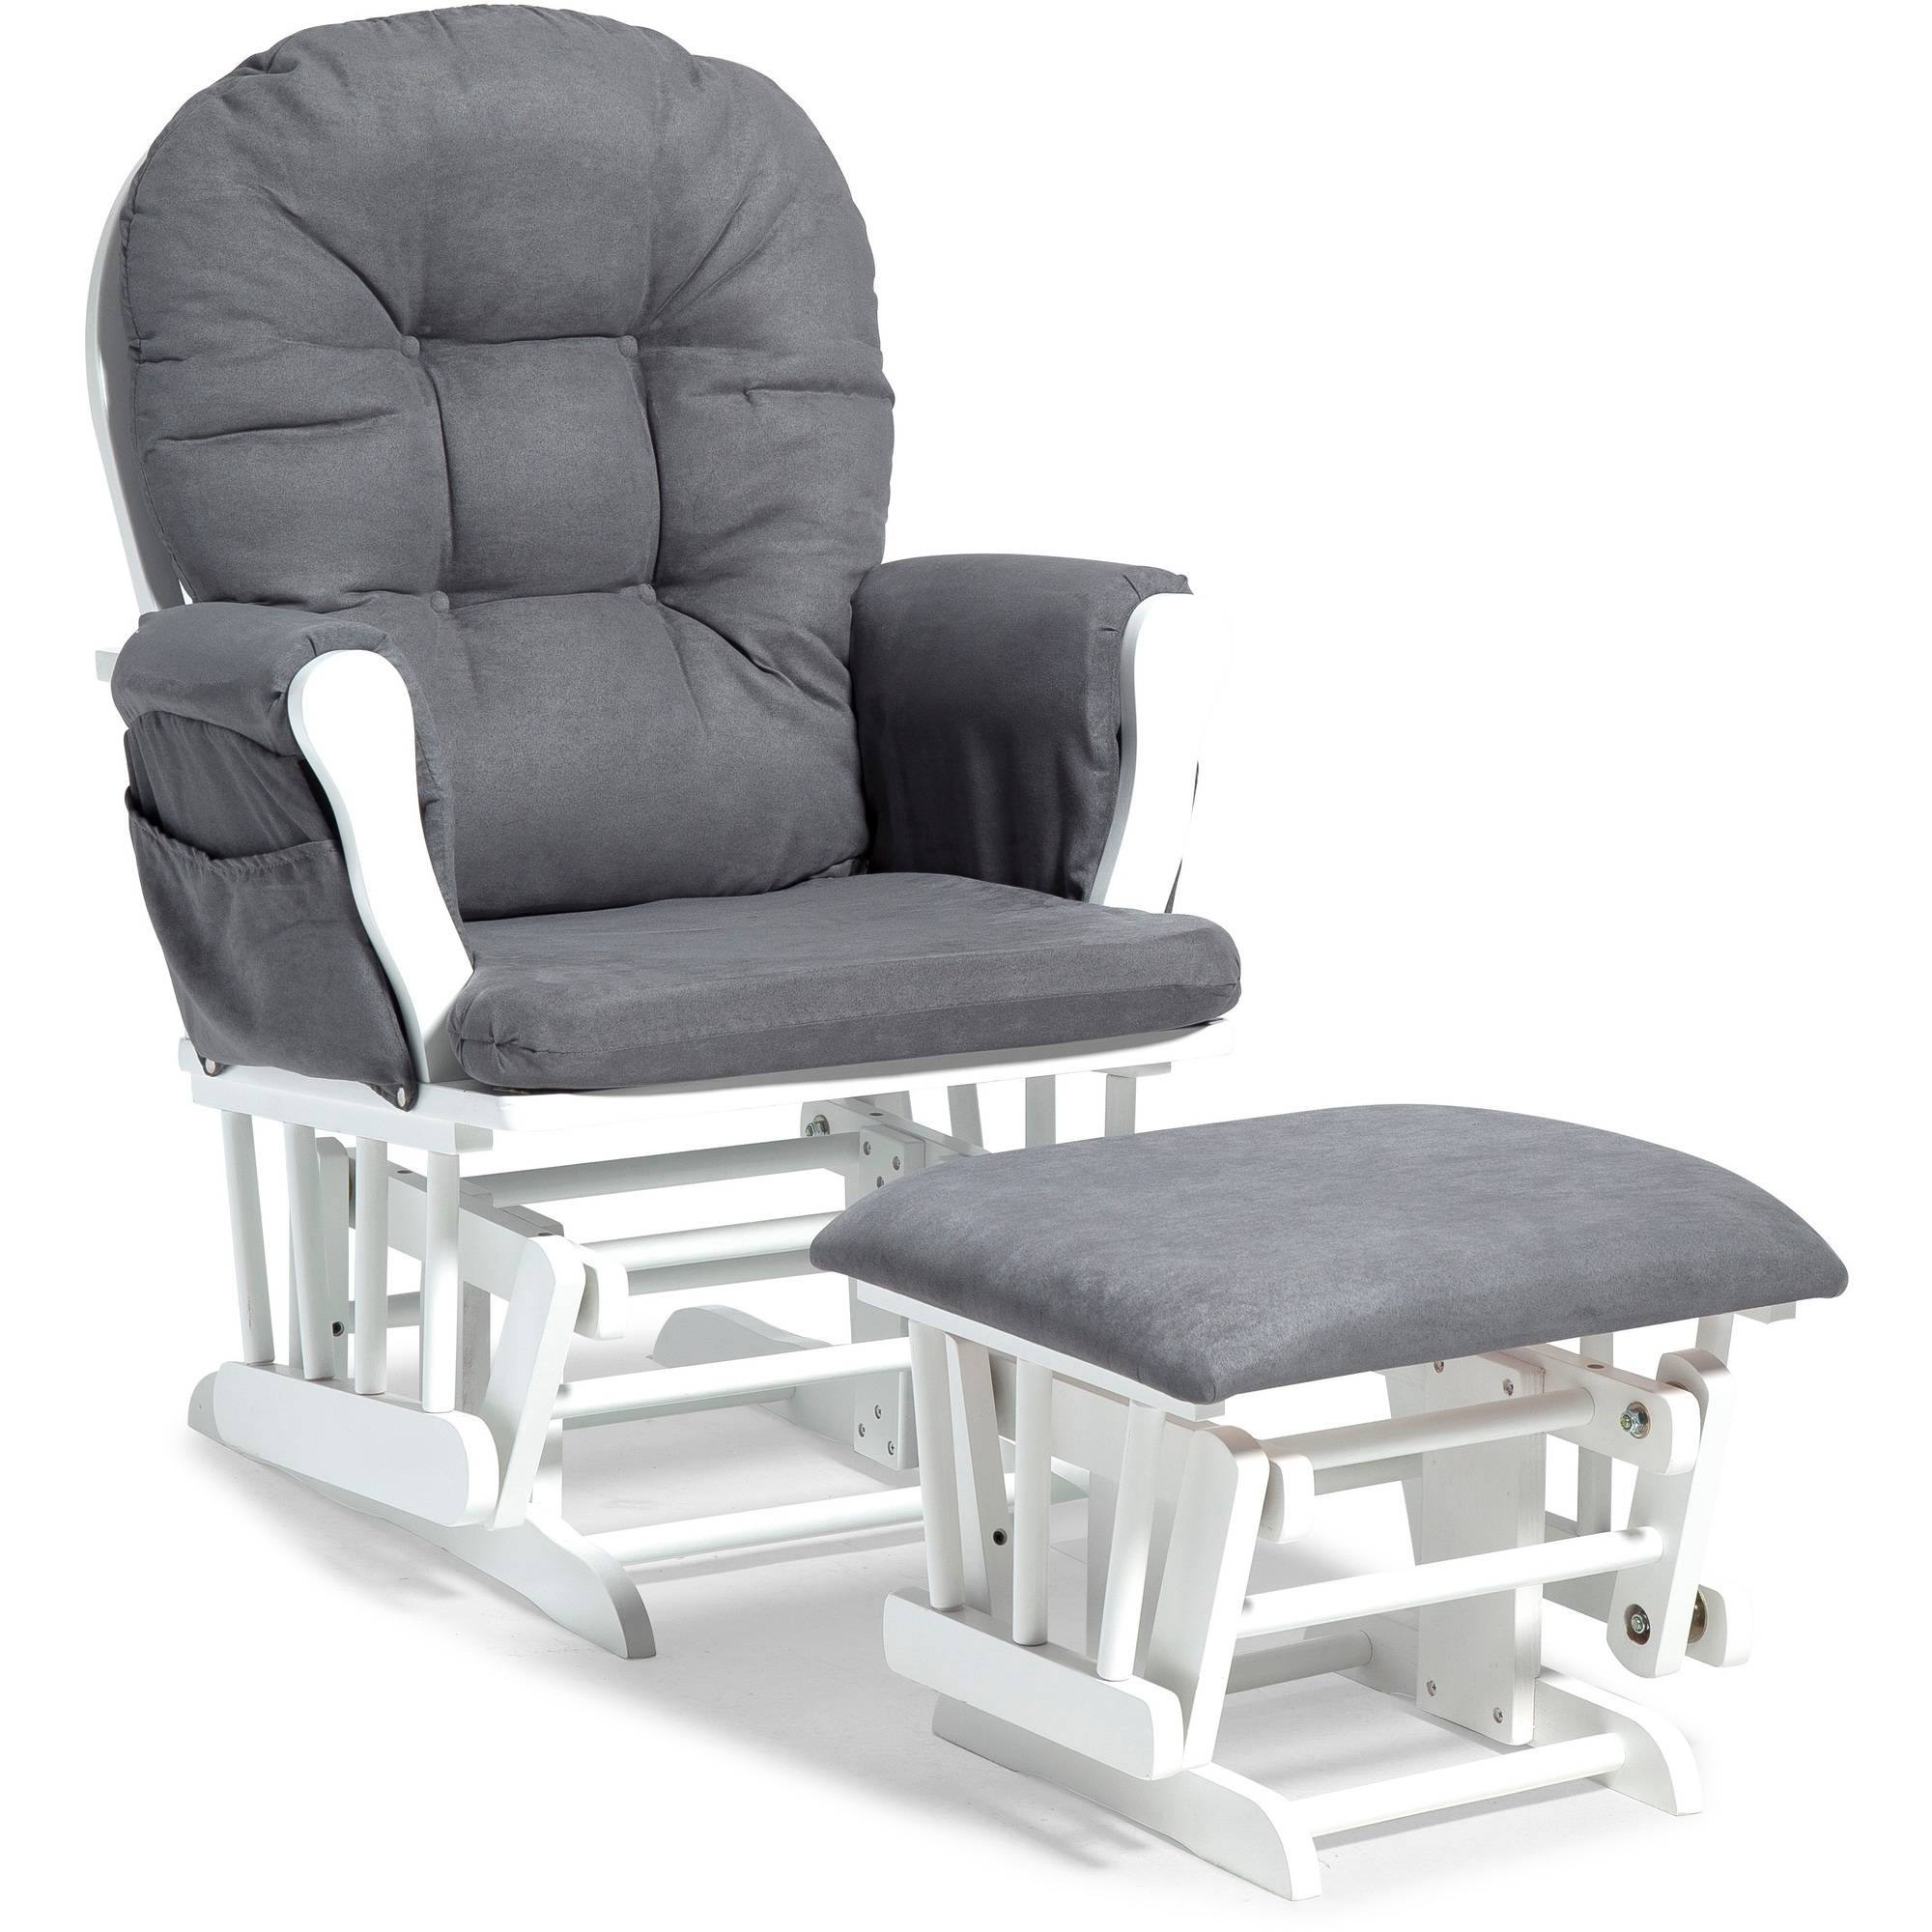 Storkcraft Hoop Glider and Ottoman White with Gray Cushions